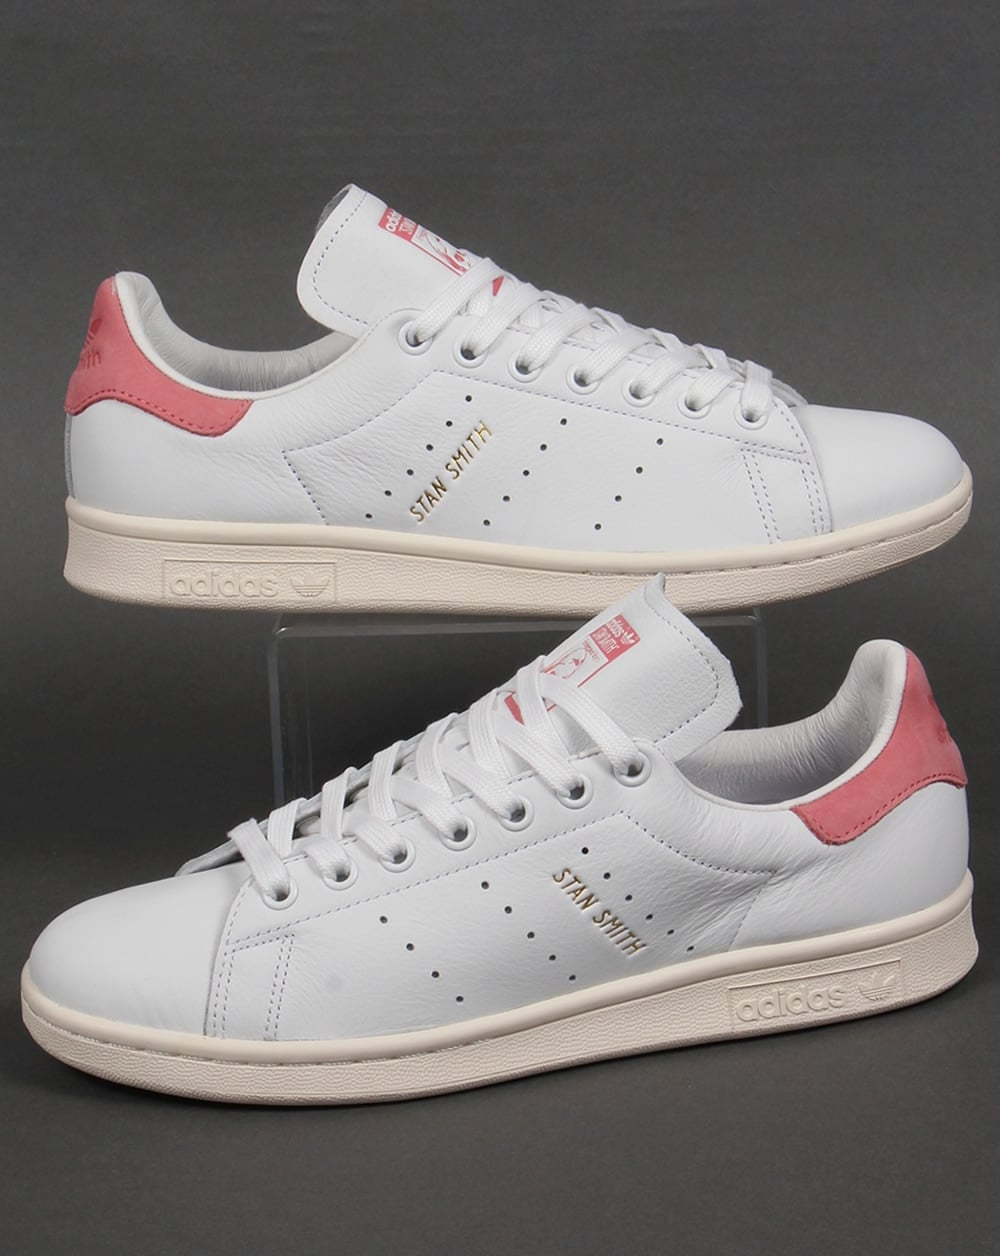 adidas originals white pink stan smith